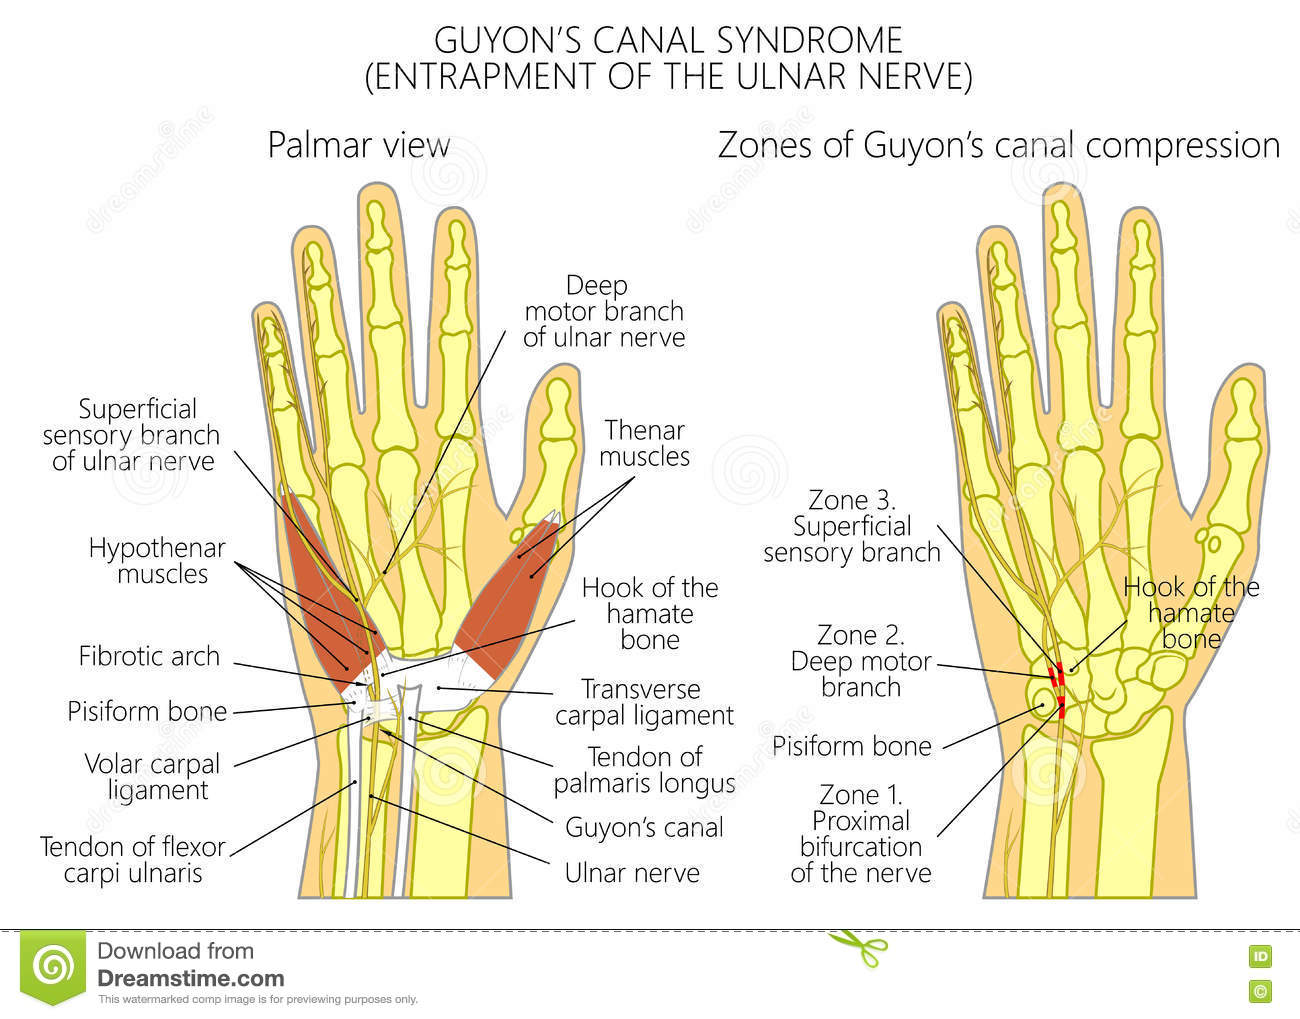 Entrapment of the ulnar nerve in the wrist in the Guyon's canal 2